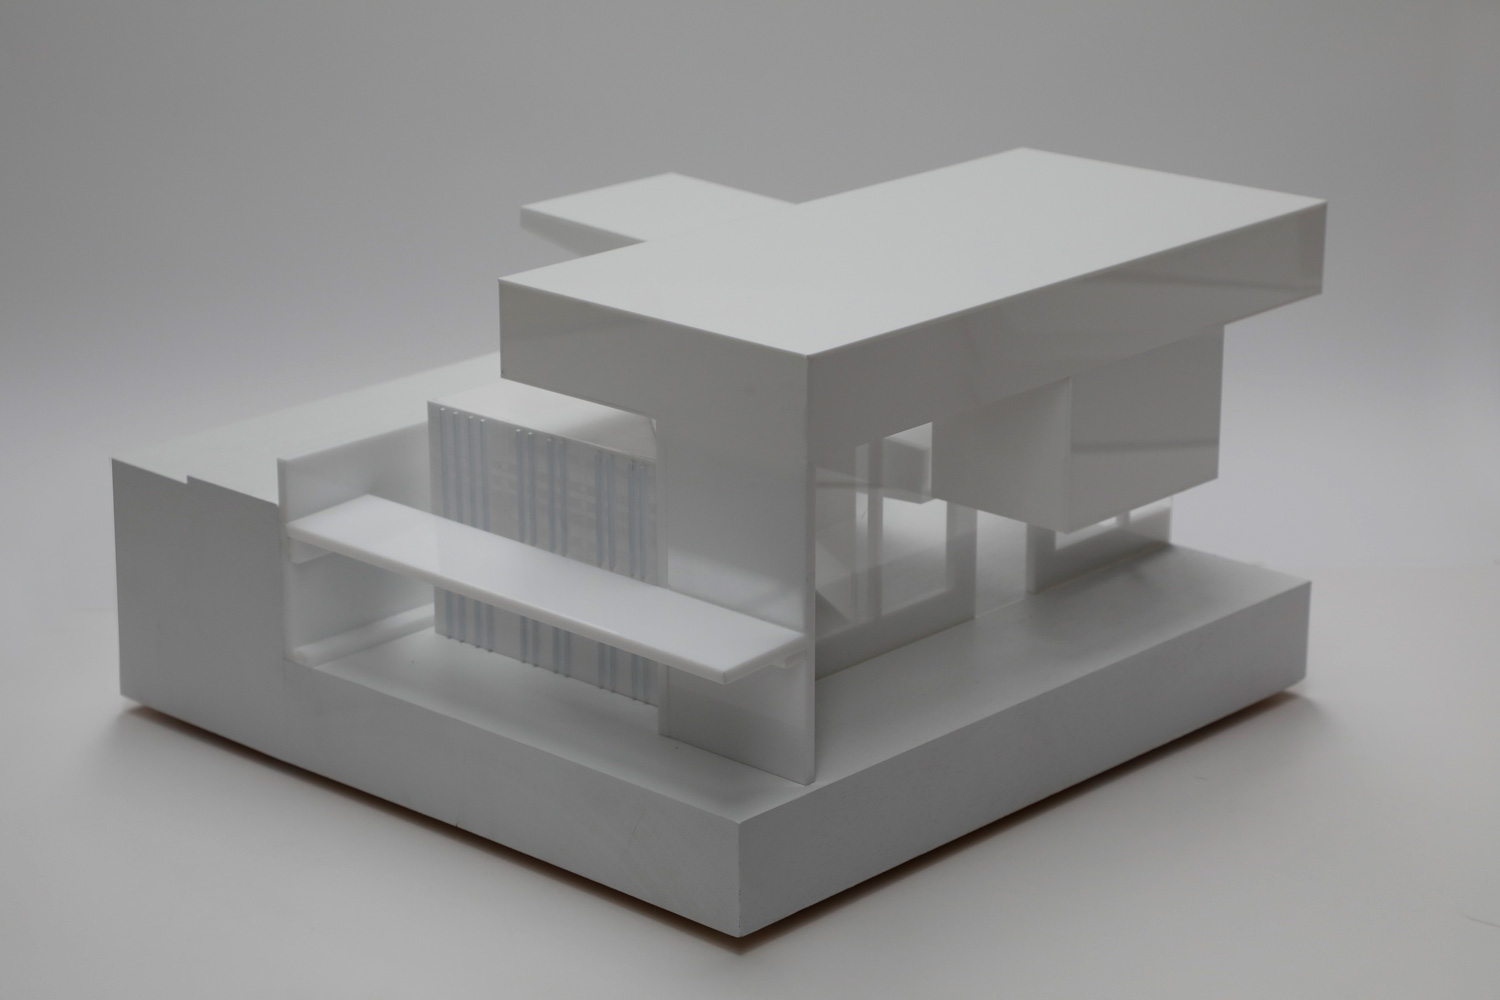 White architectural model exhibition